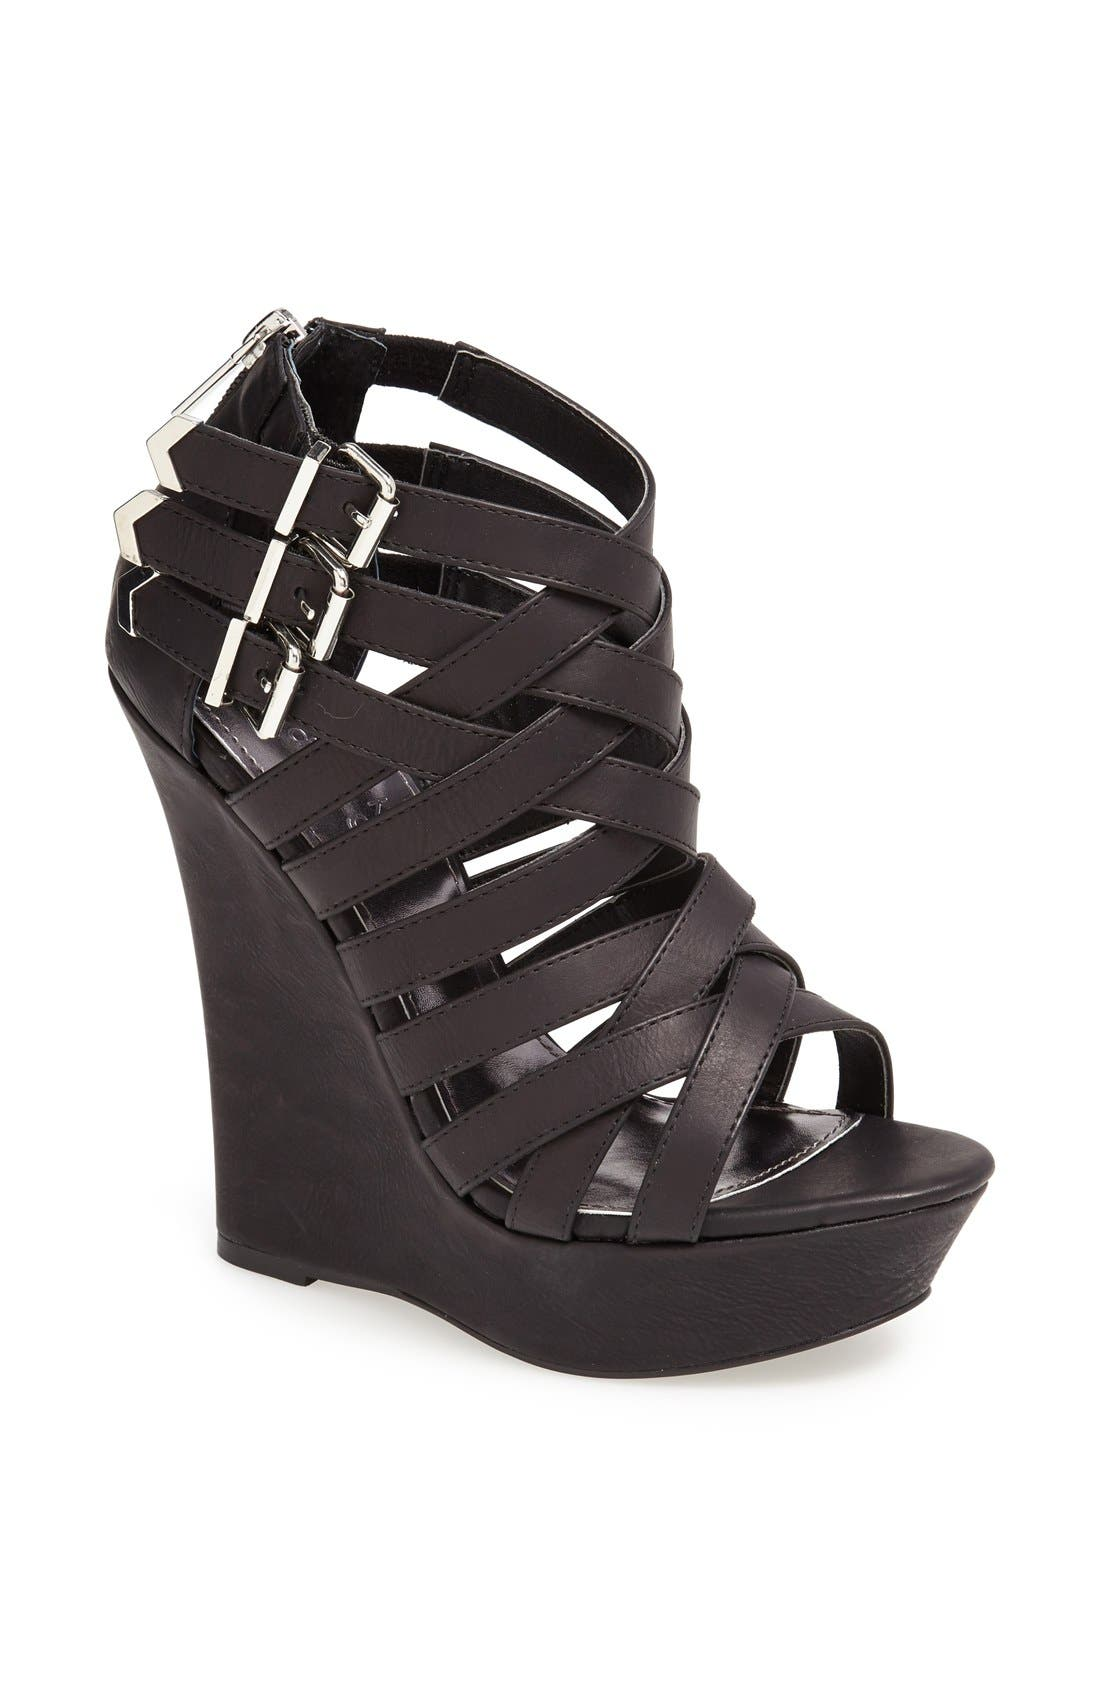 Alternate Image 1 Selected - KENDALL + KYLIE Madden Girl 'Fortune' Wedge Sandal